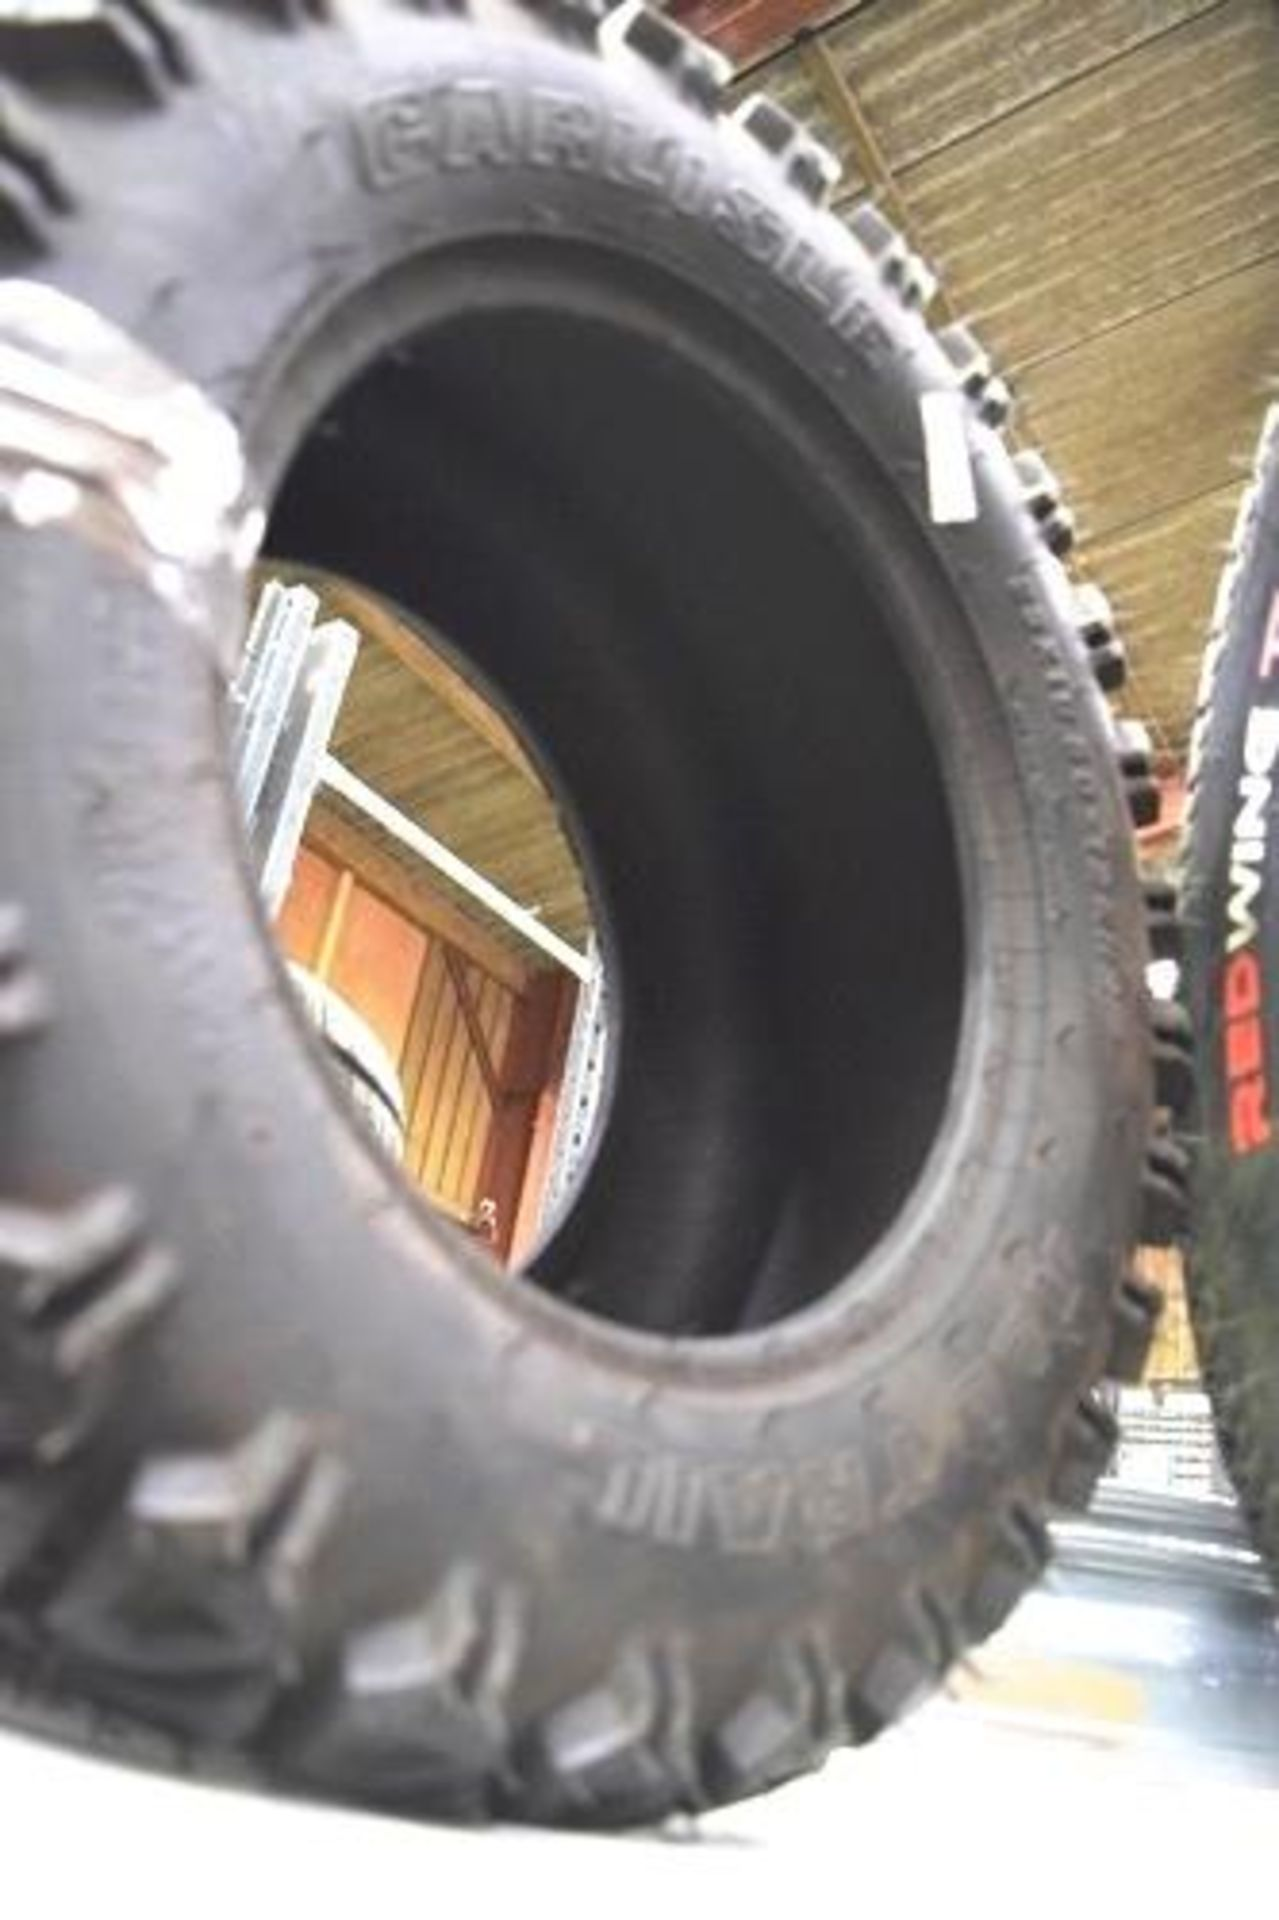 1 x Carlisle All Trail tyre, size 23 x 10.50-12 NHS - New (GS10) - Image 2 of 2